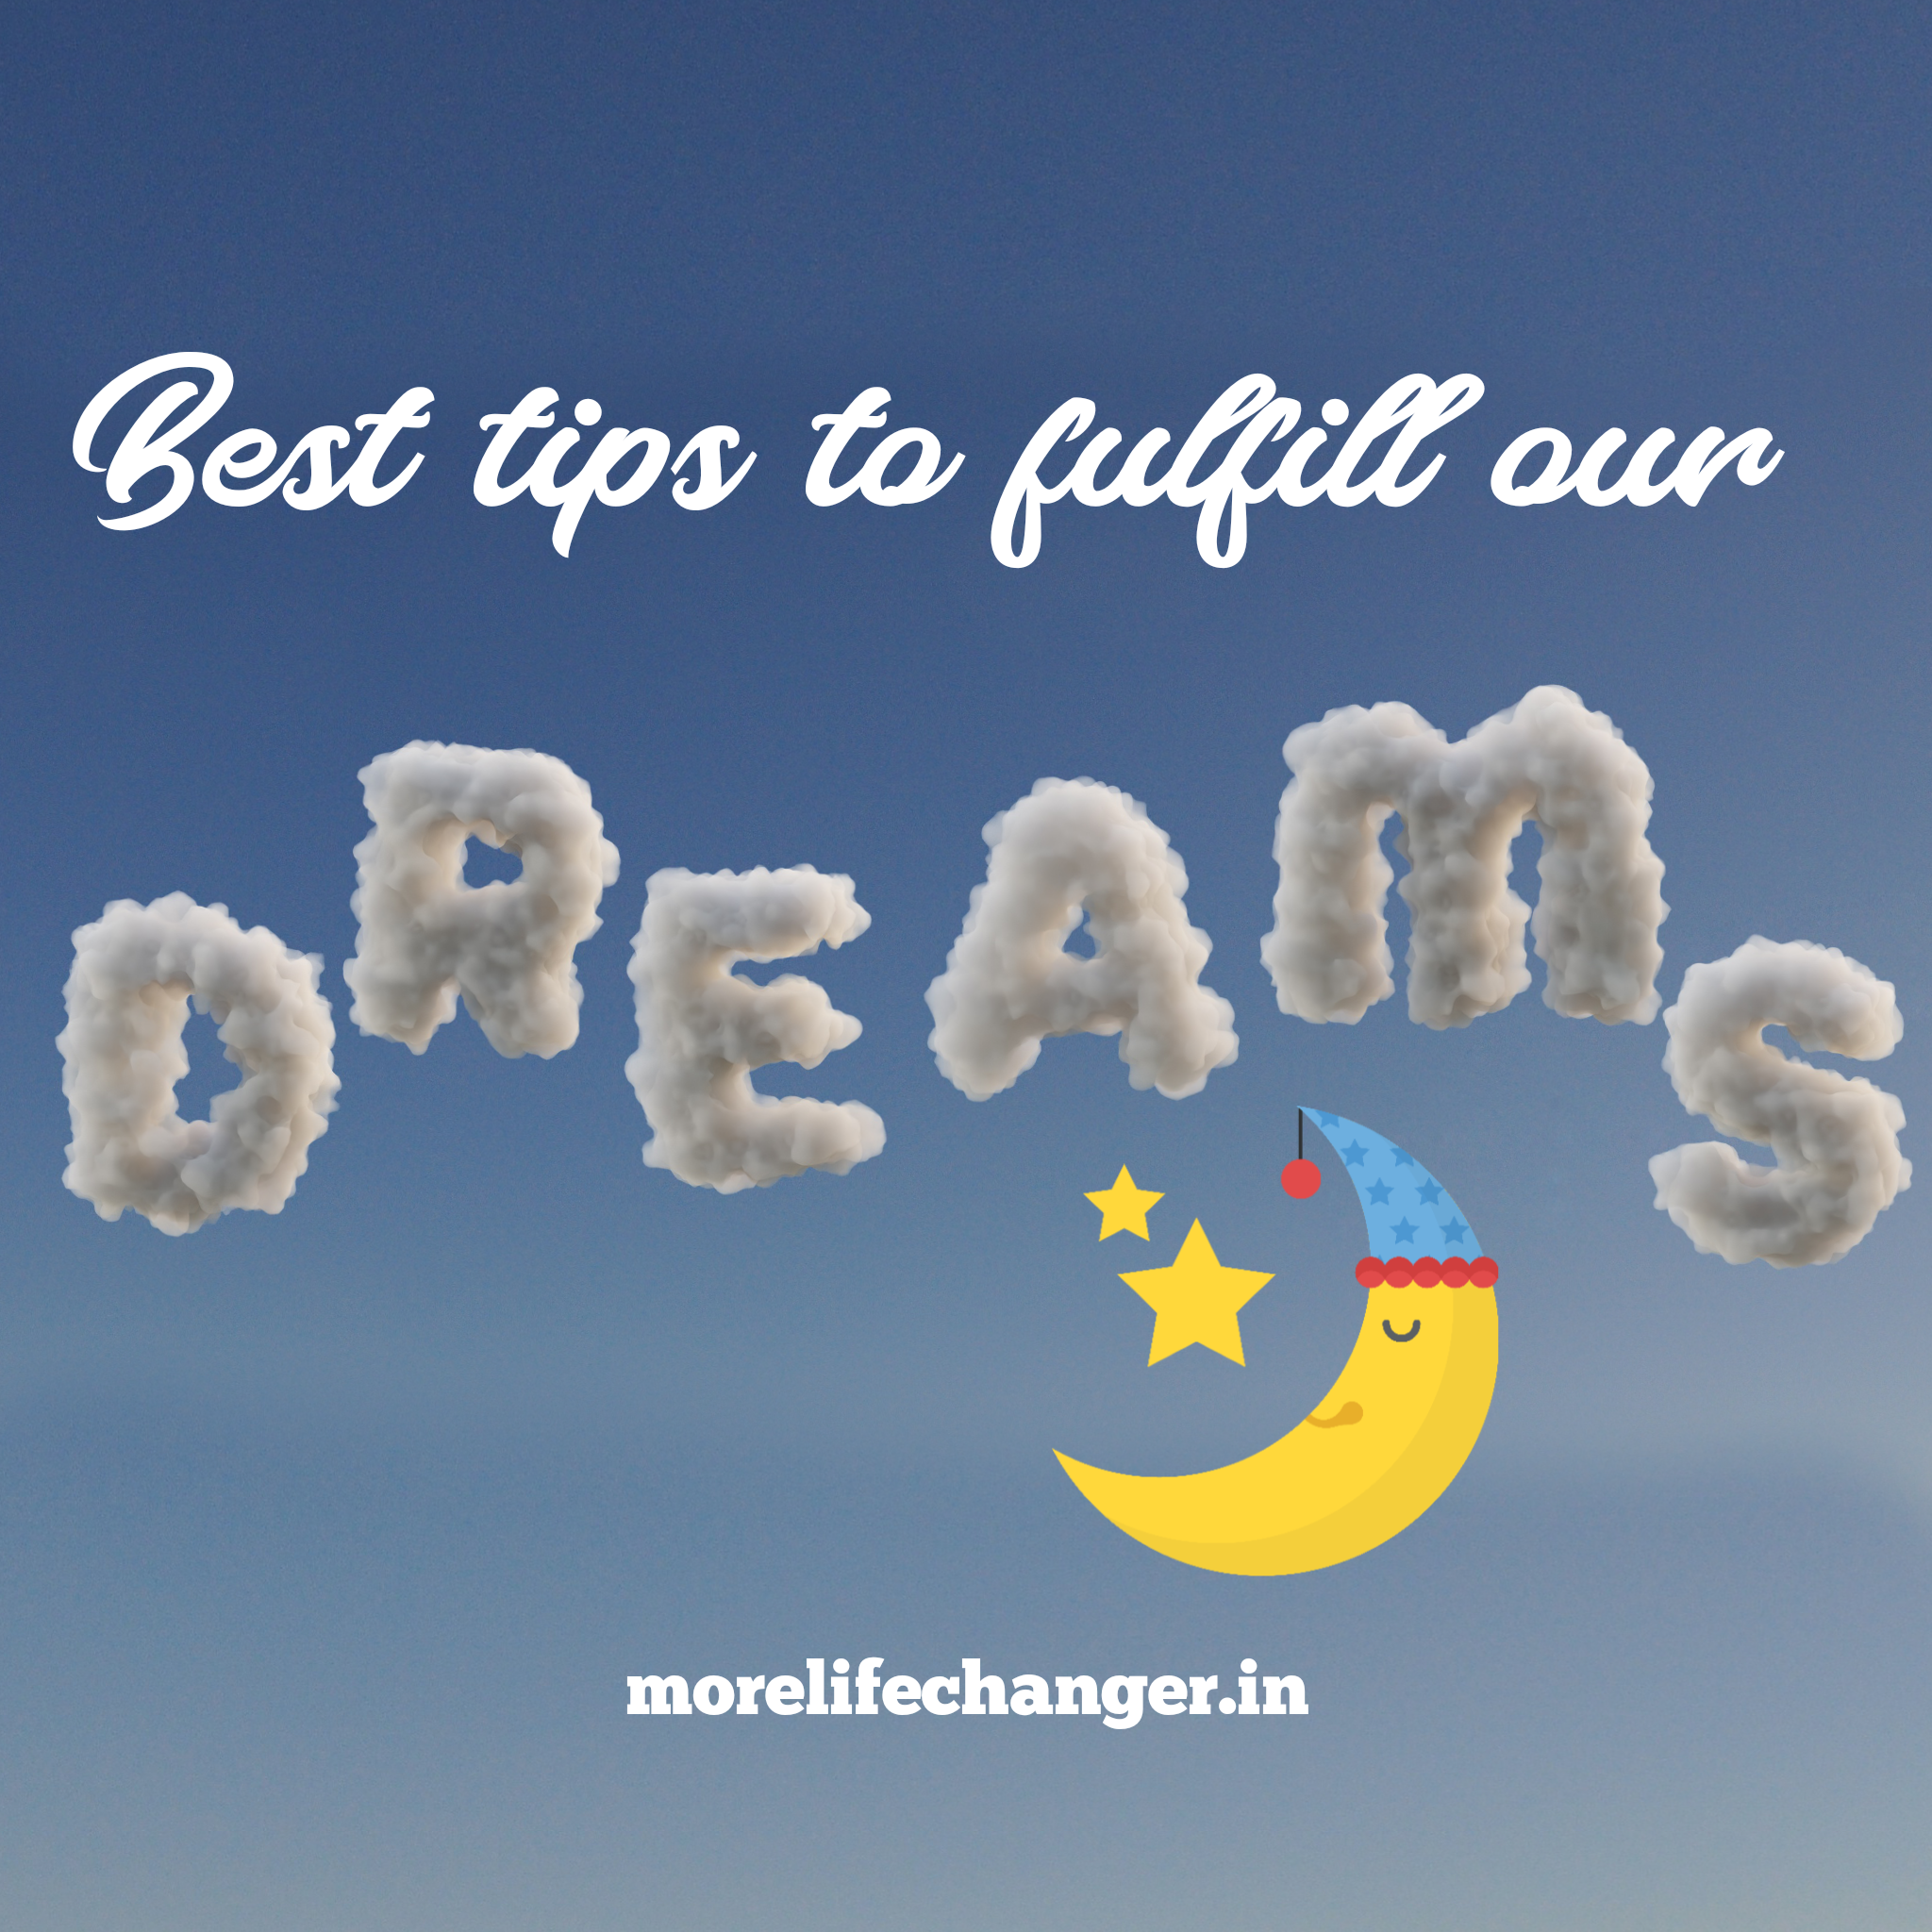 Basics tips to fulfill our dreams